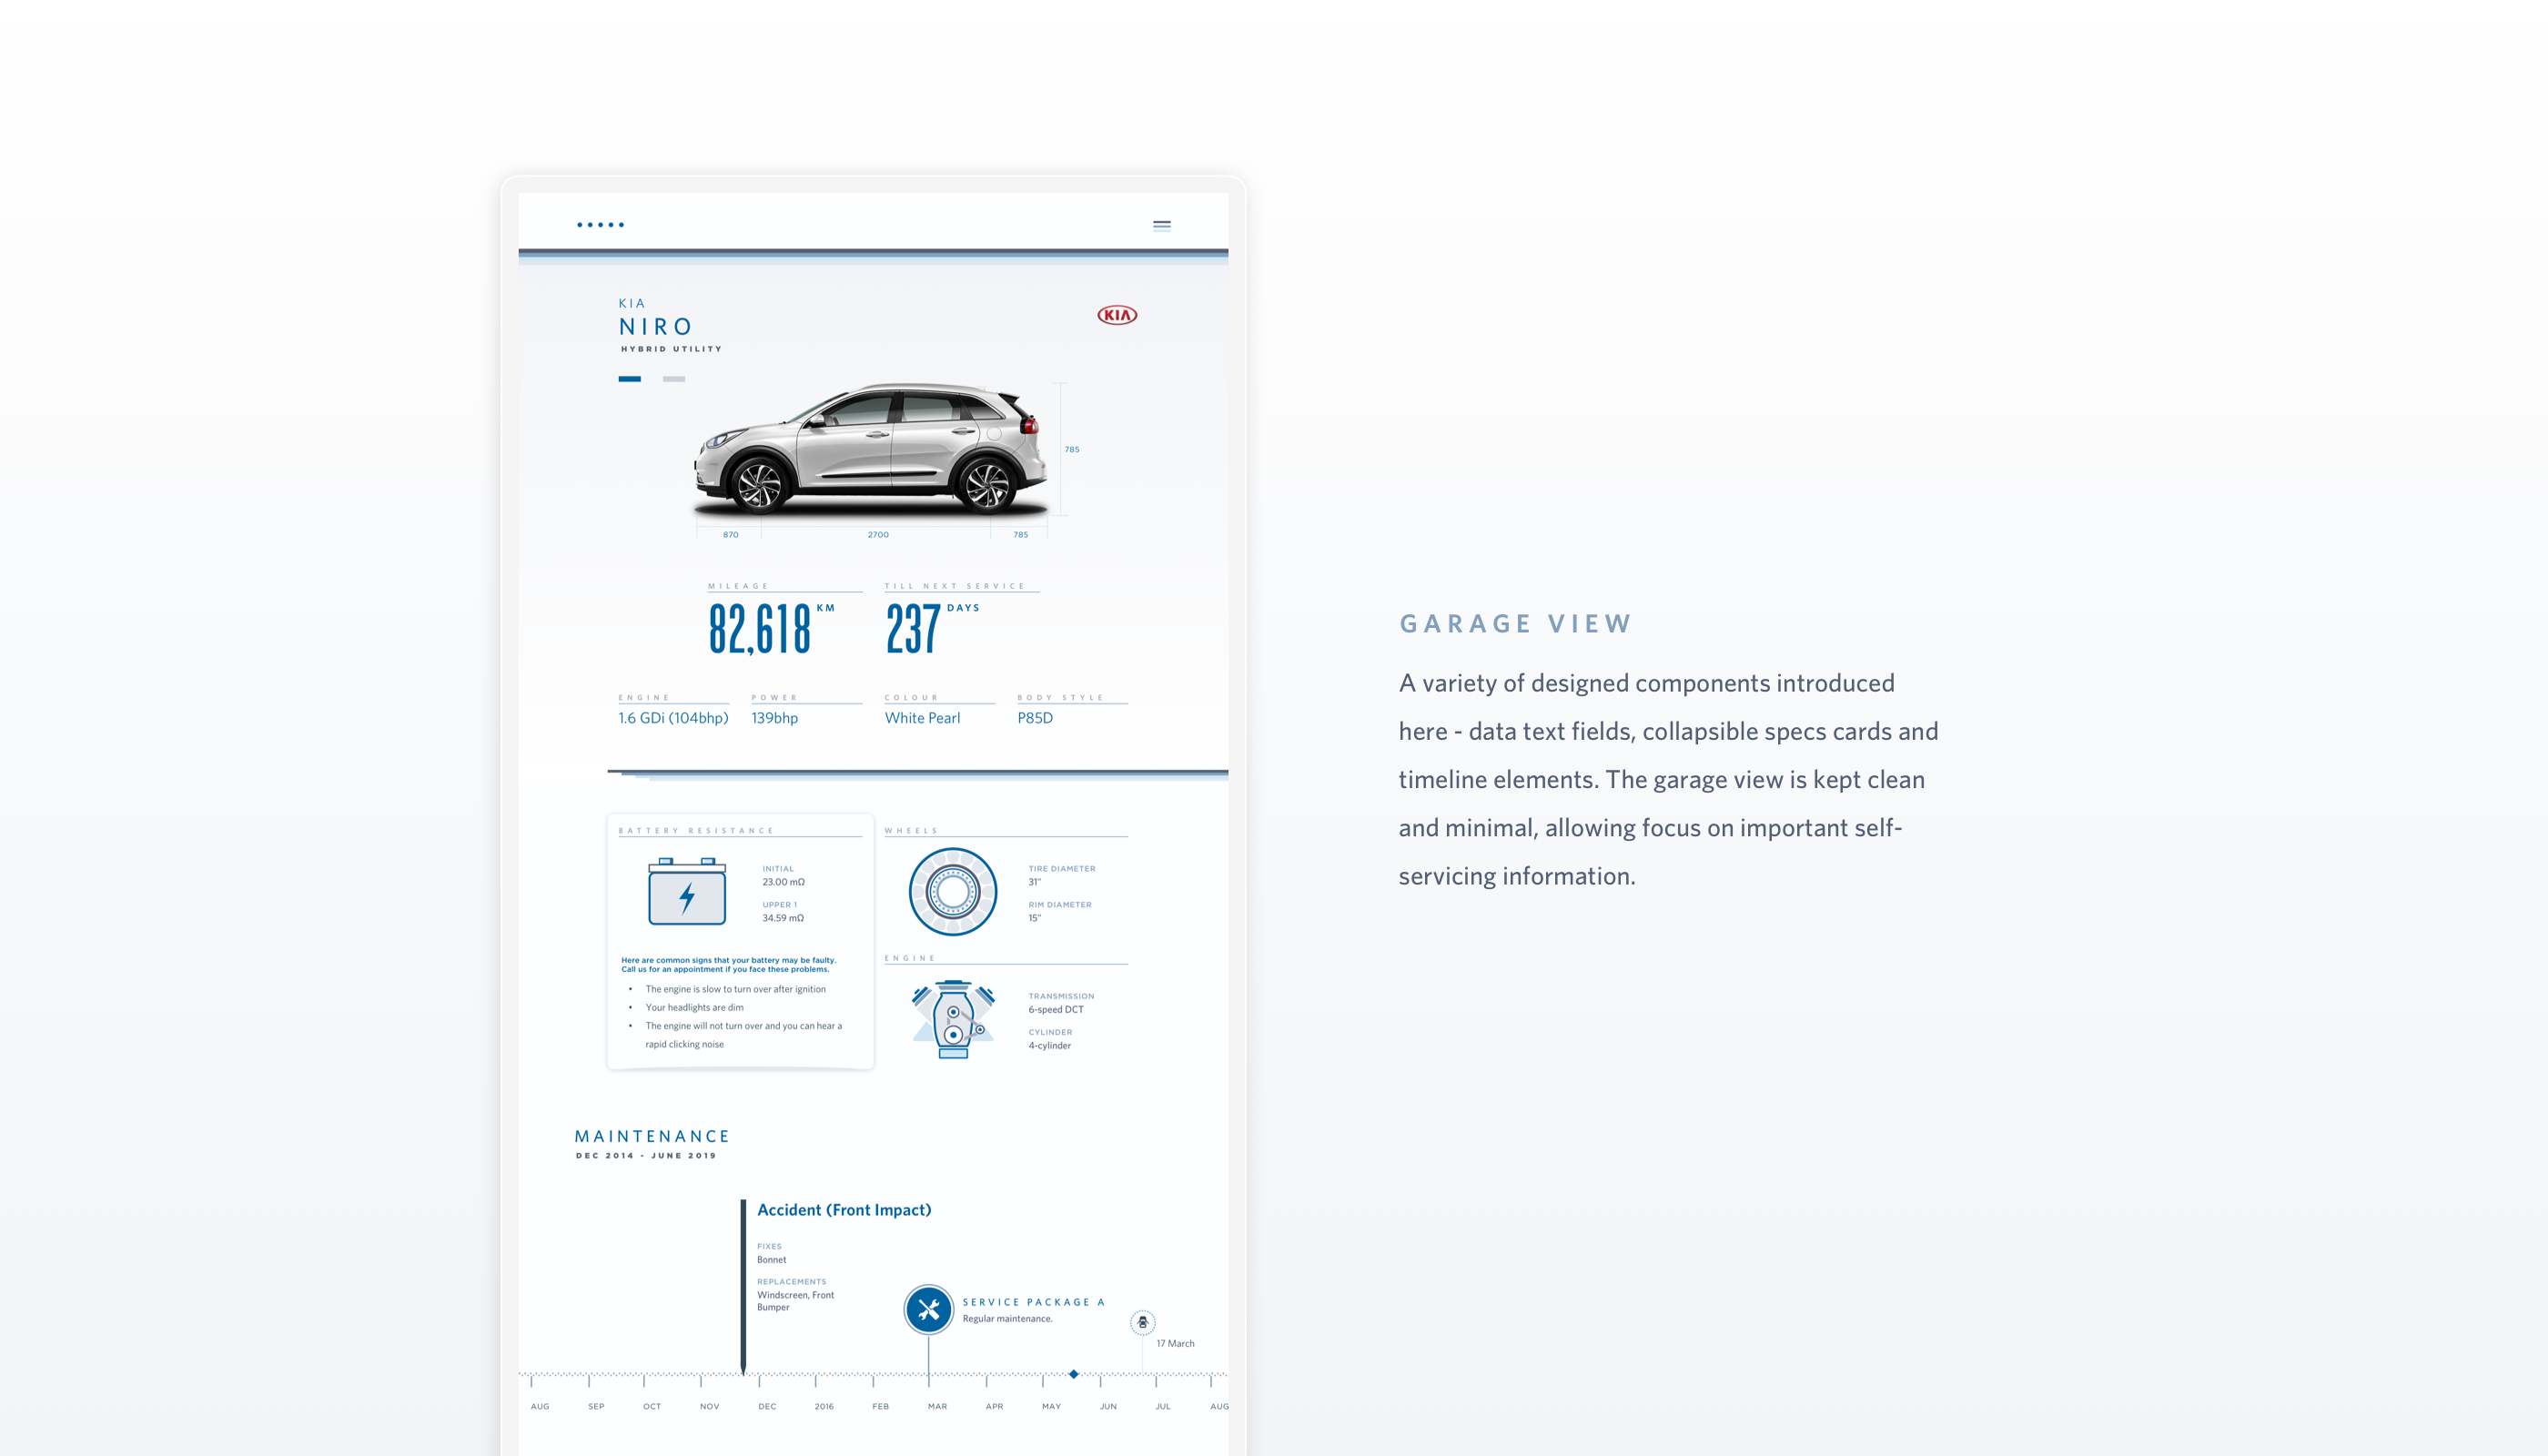 A variety of designed components introduced here - data text fields, collapsible specs cards and timeline elements. The garage view is kept clean and minimal, allowing focus on important self-servicing information.